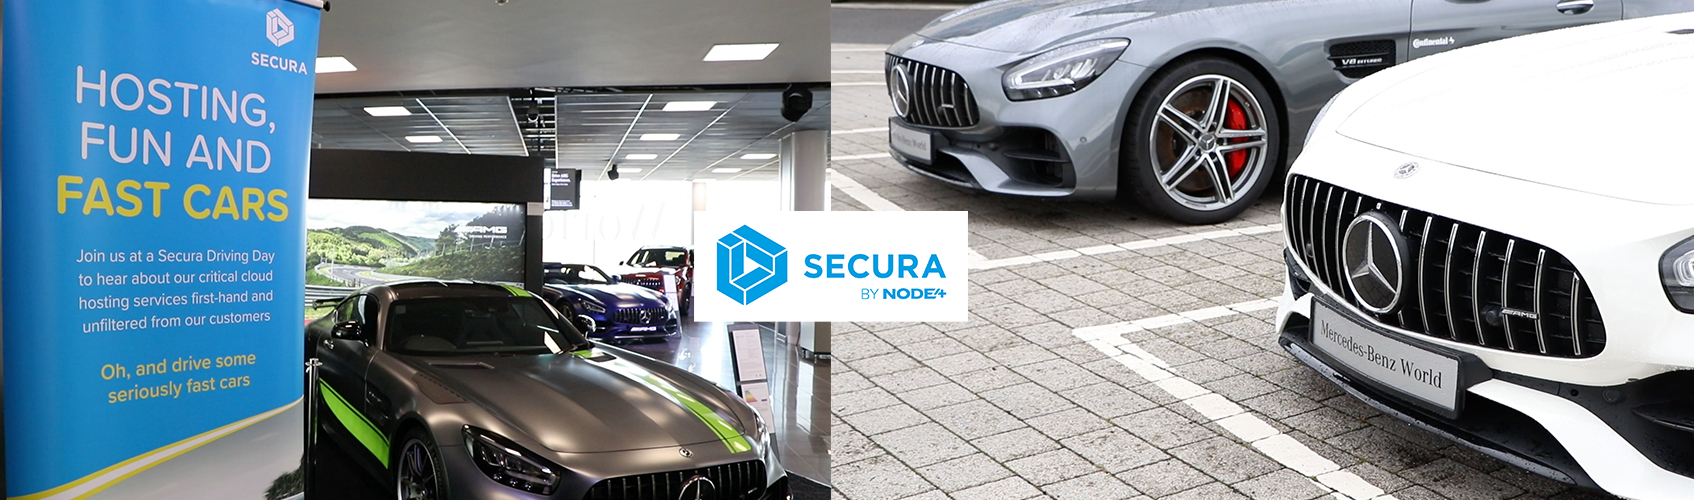 Secura Azure Driving Day